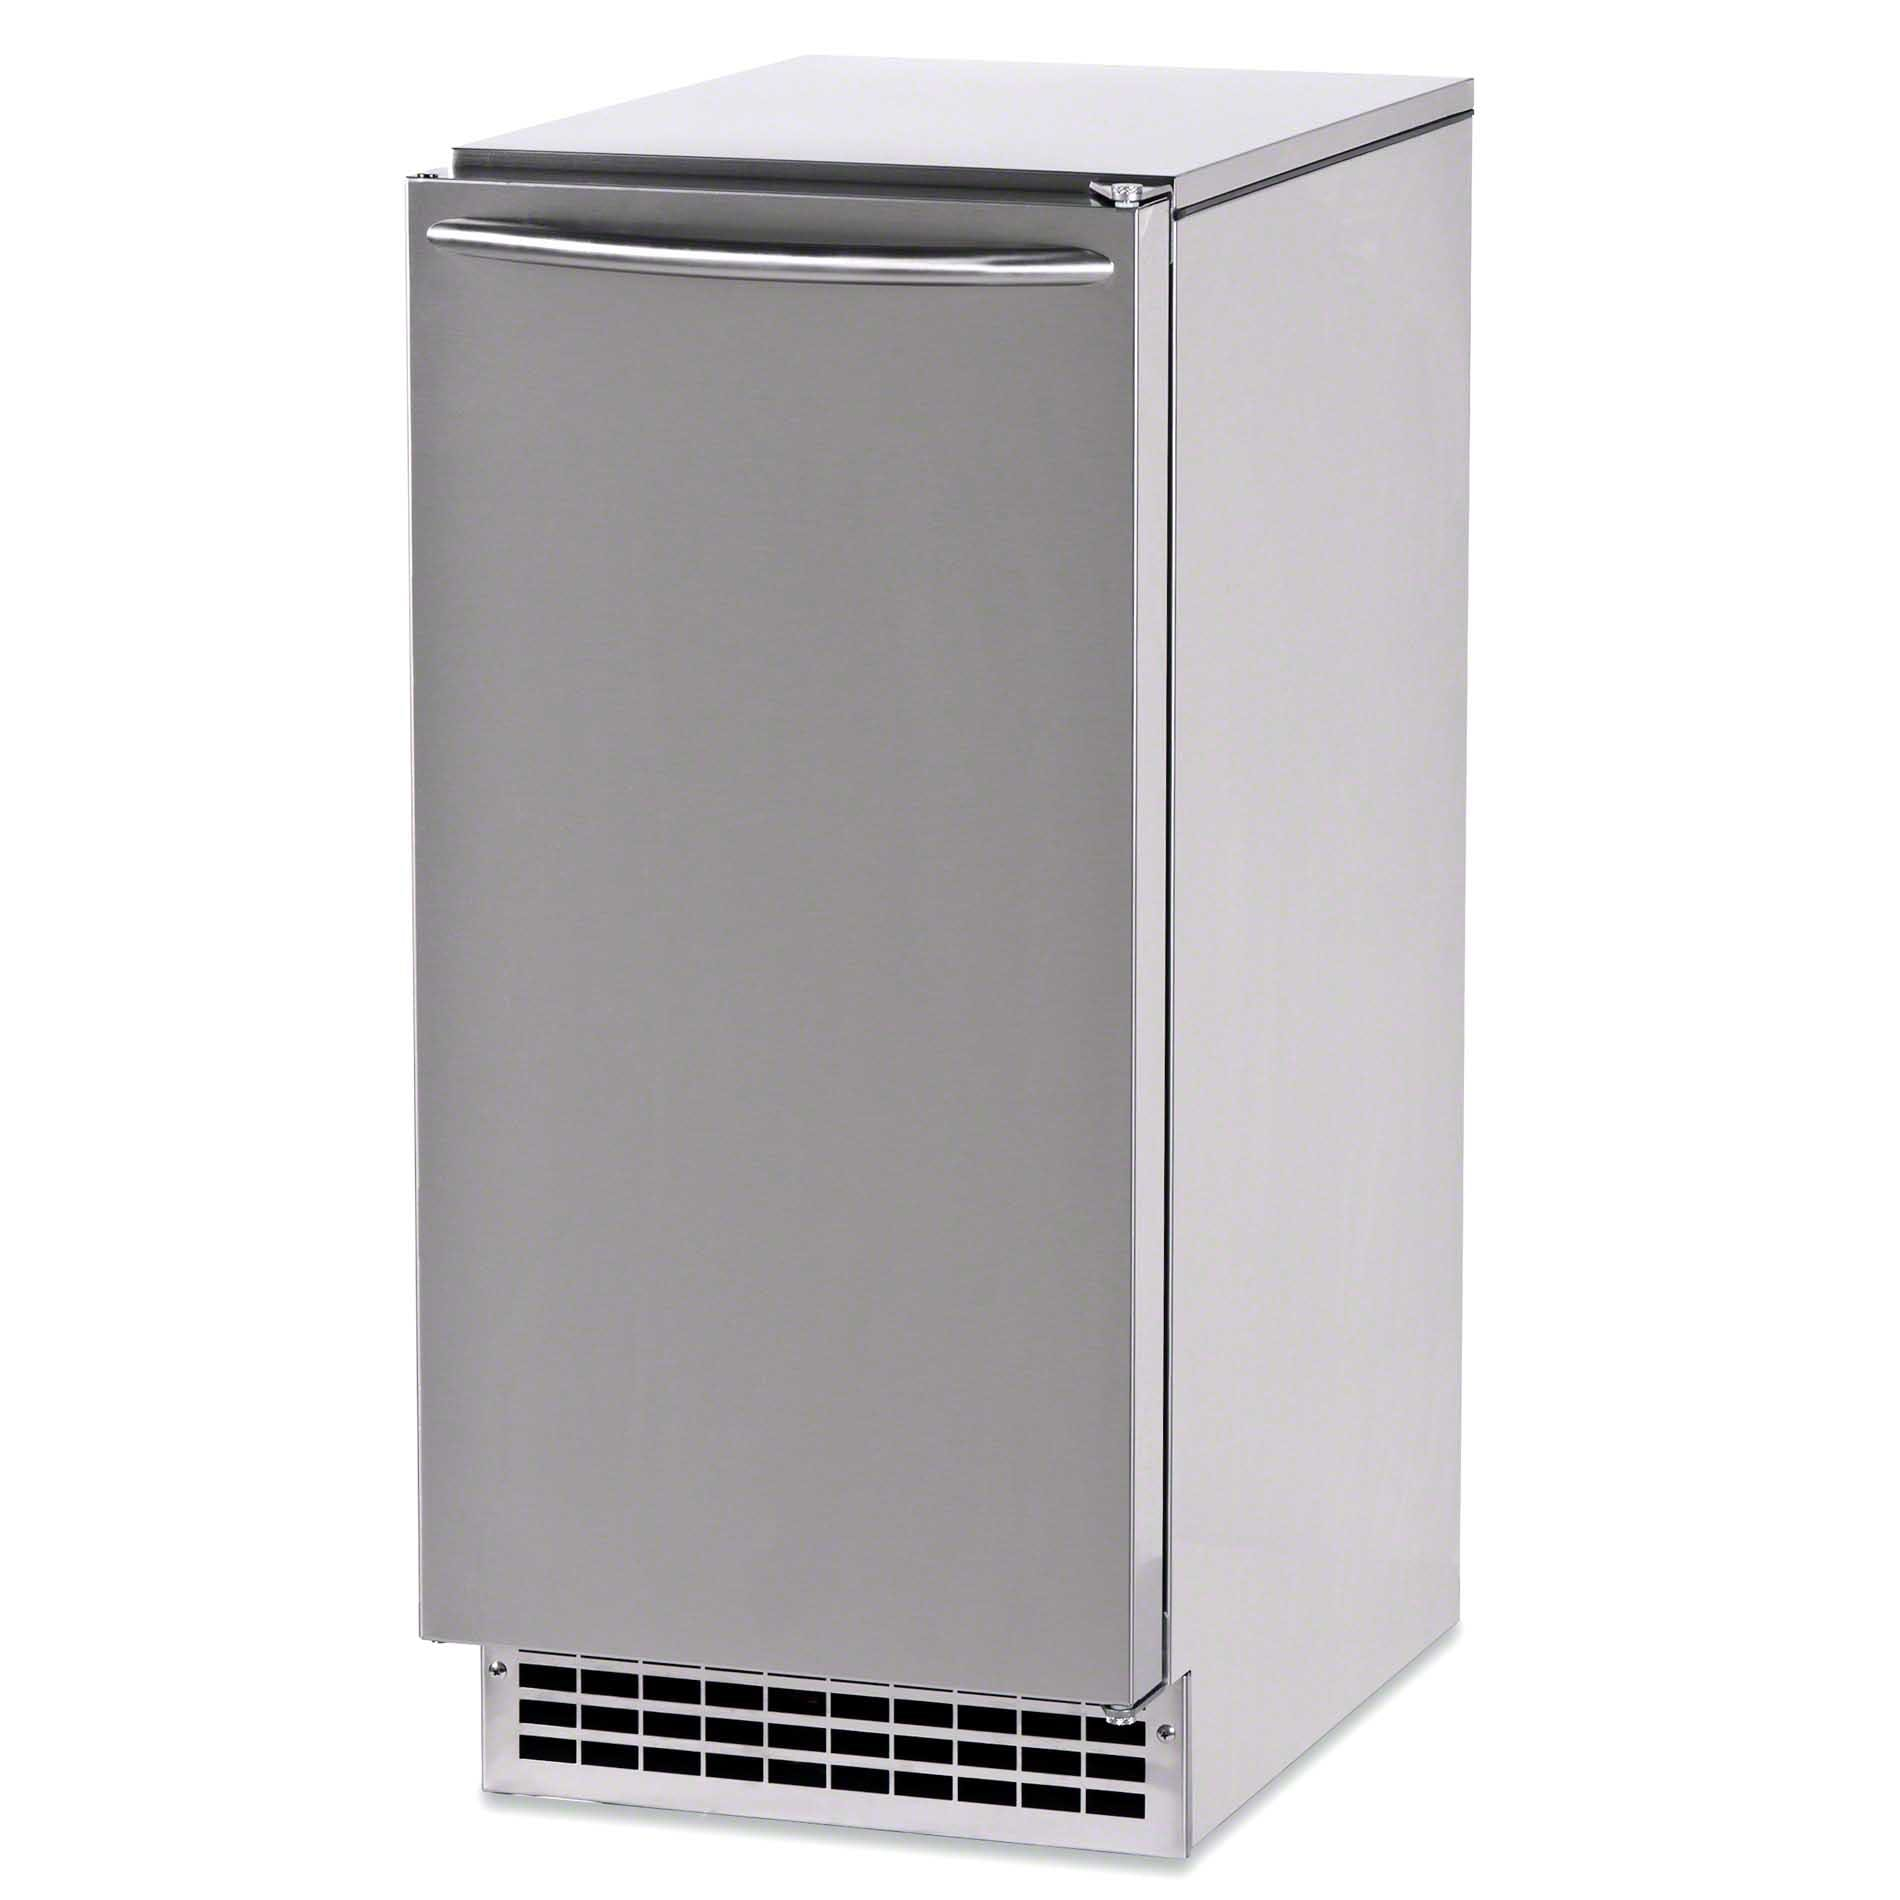 Scotsman - CU50PA-1A 65 lb Self-Contained Gourmet Ice Machine - sold by Food Service Warehouse